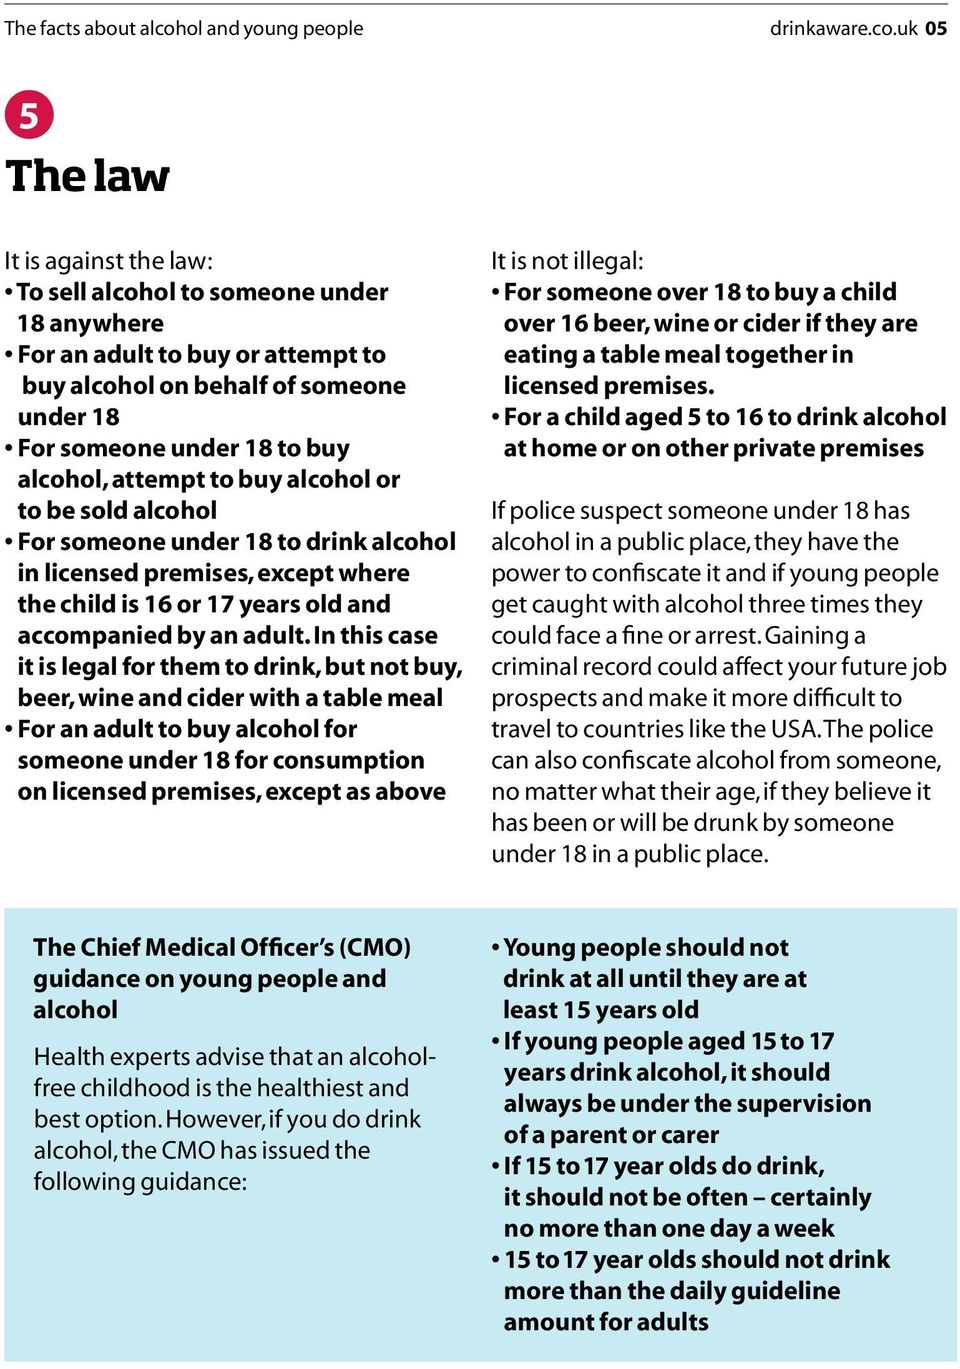 attempt to buy alcohol or to be sold alcohol For someone under 18 to drink alcohol in licensed premises, except where the child is 16 or 17 years old and accompanied by an adult.